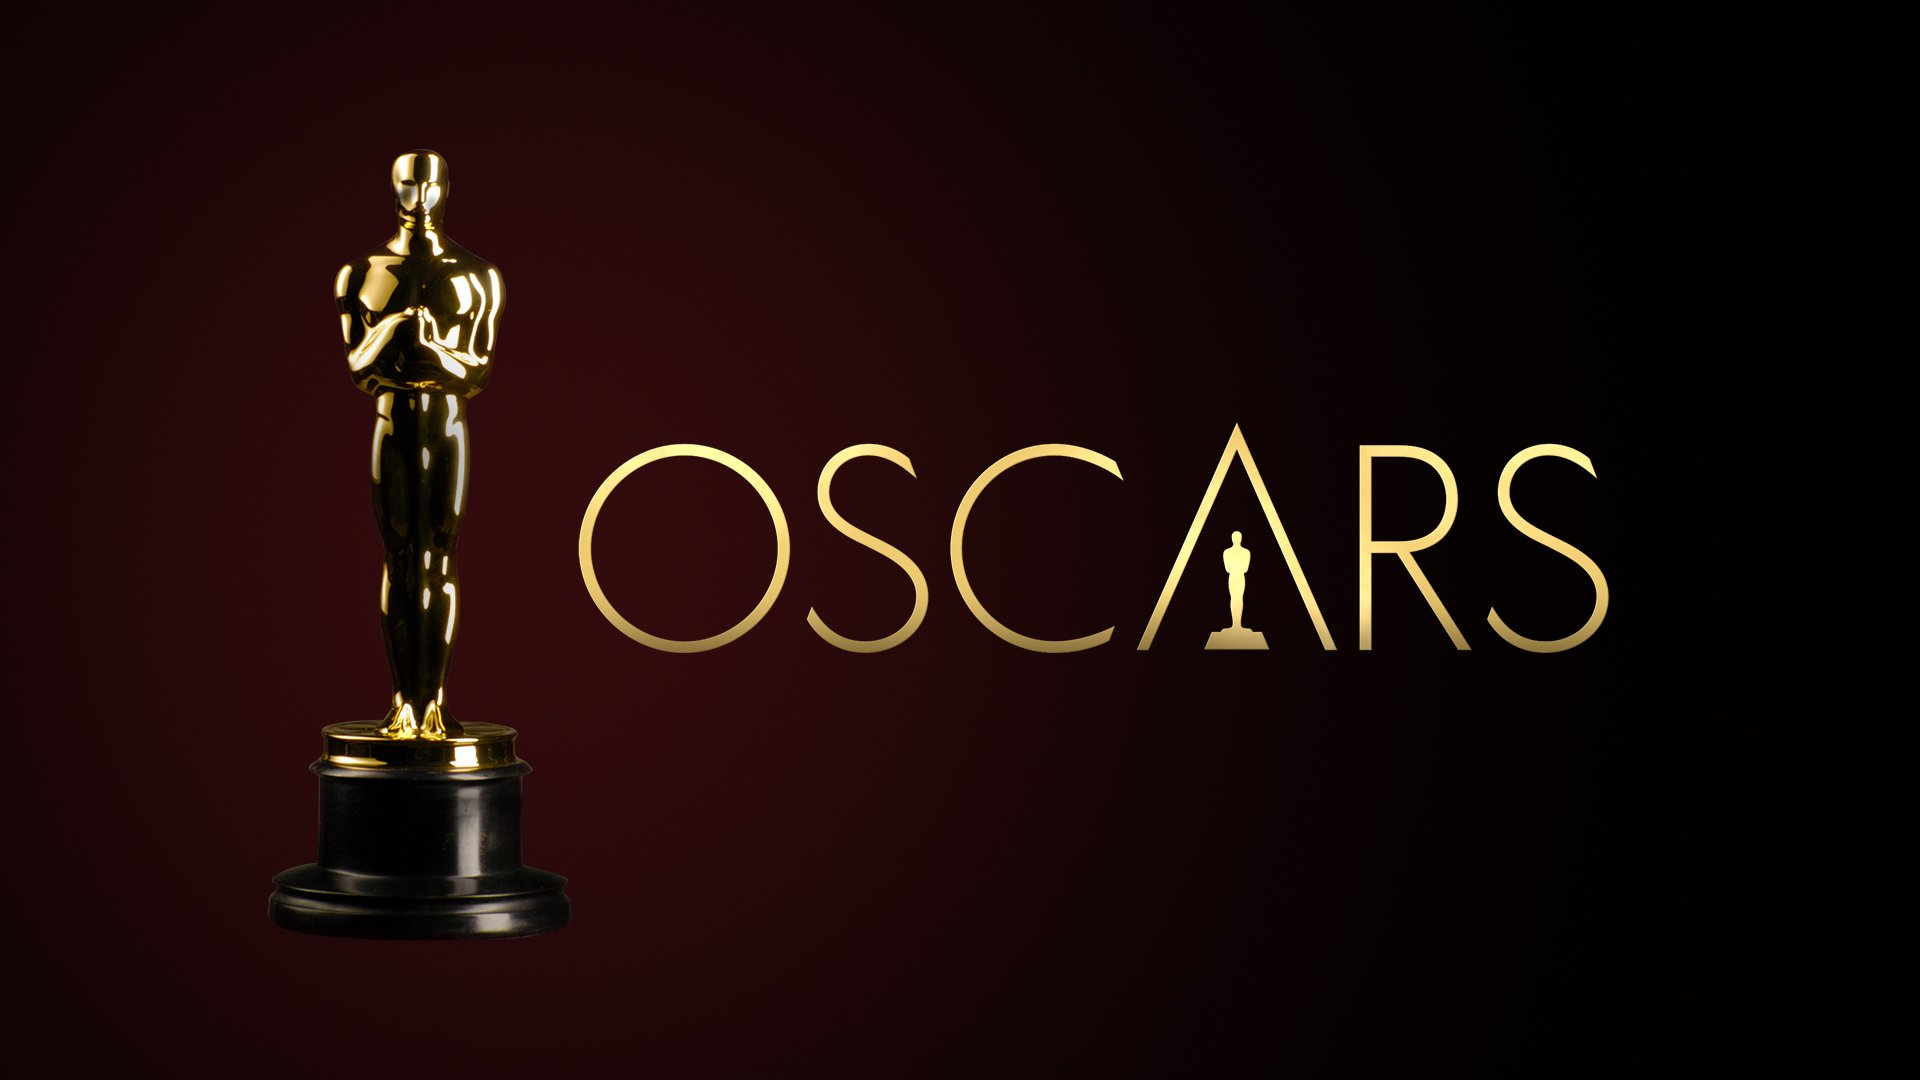 Oscars 2020 red carpet live stream where to watch pre show 1920x1080